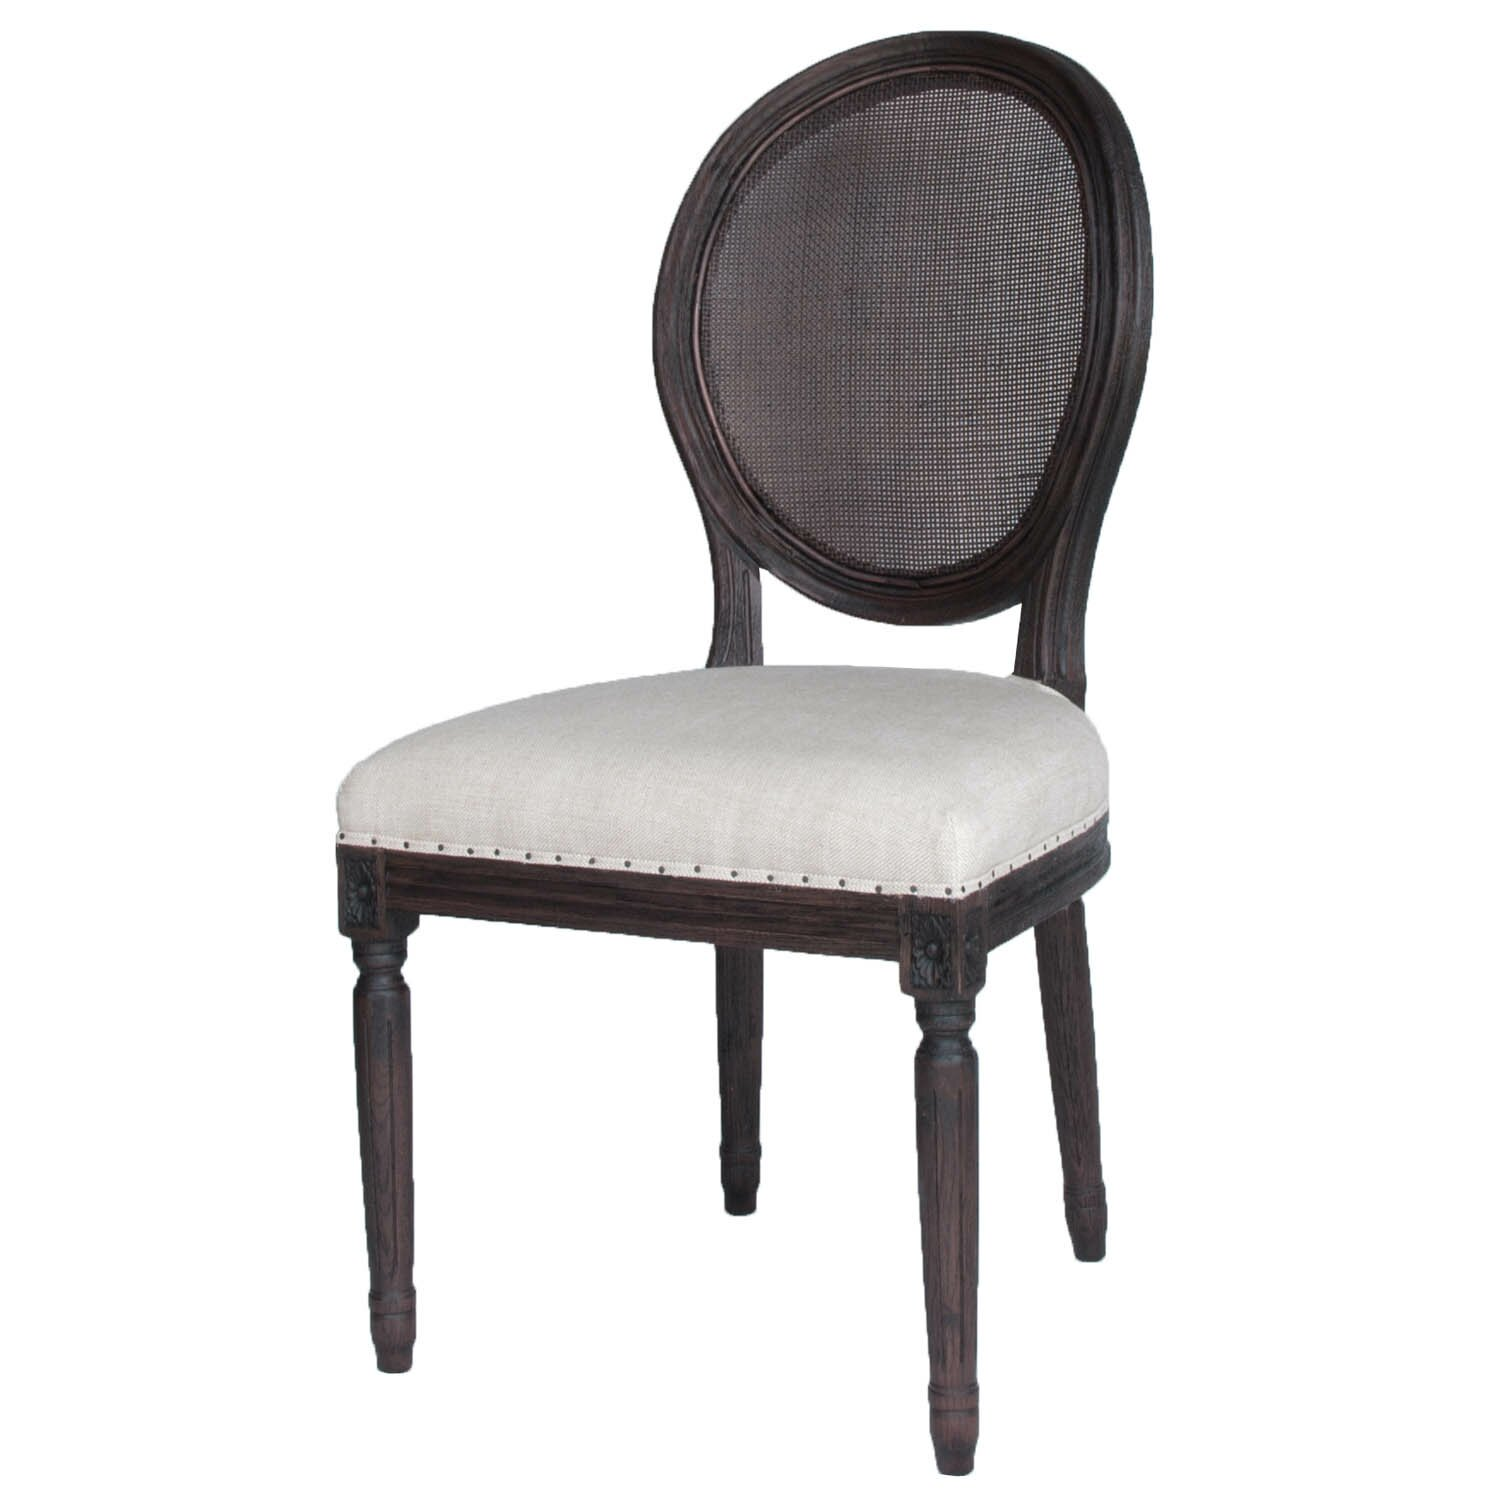 Orient express furniture oliver side chair reviews wayfair for Furniture express